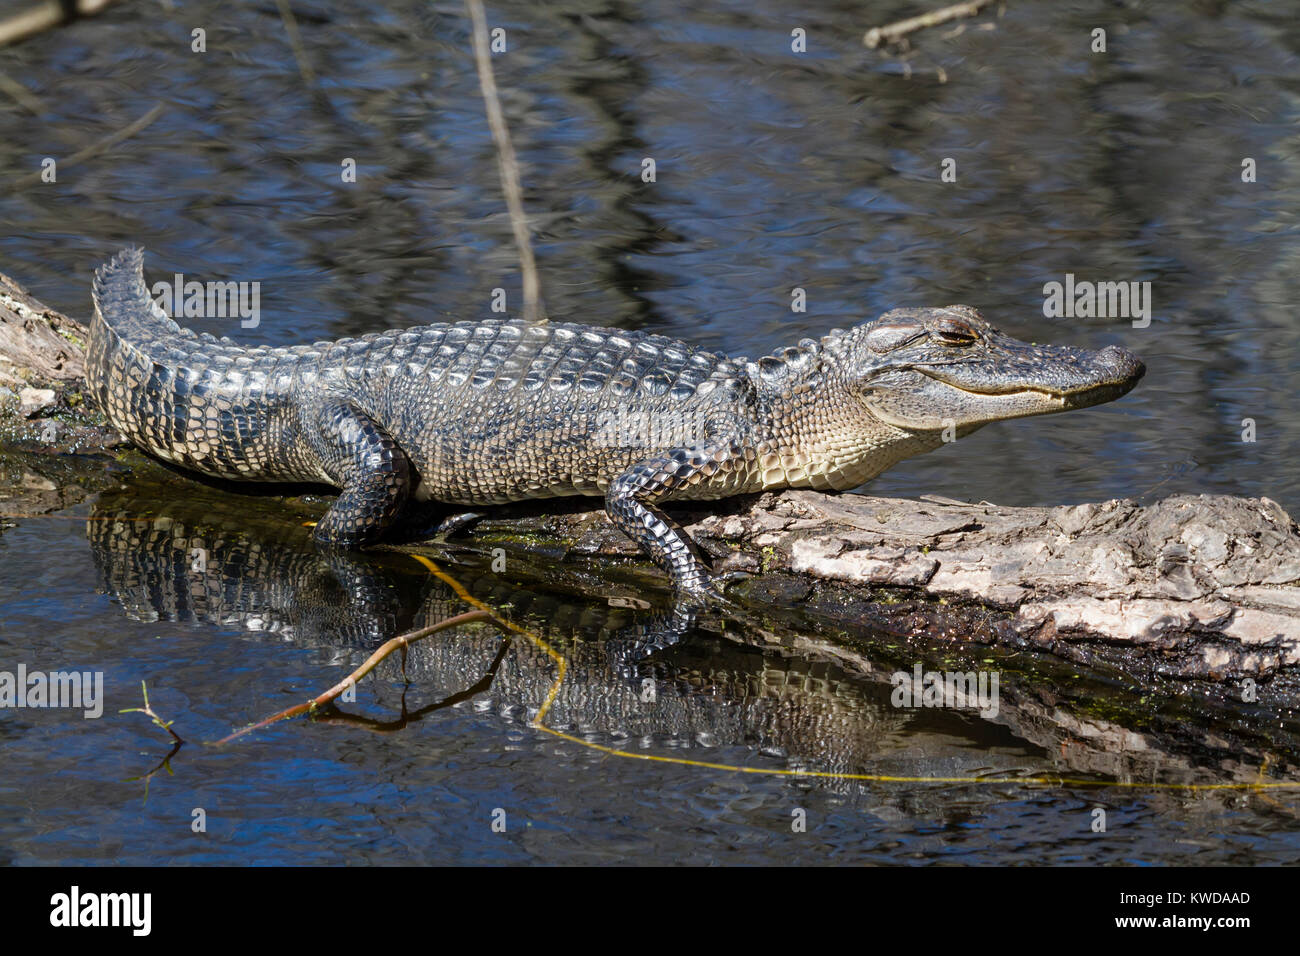 Young alligator on a tree over water - Stock Image